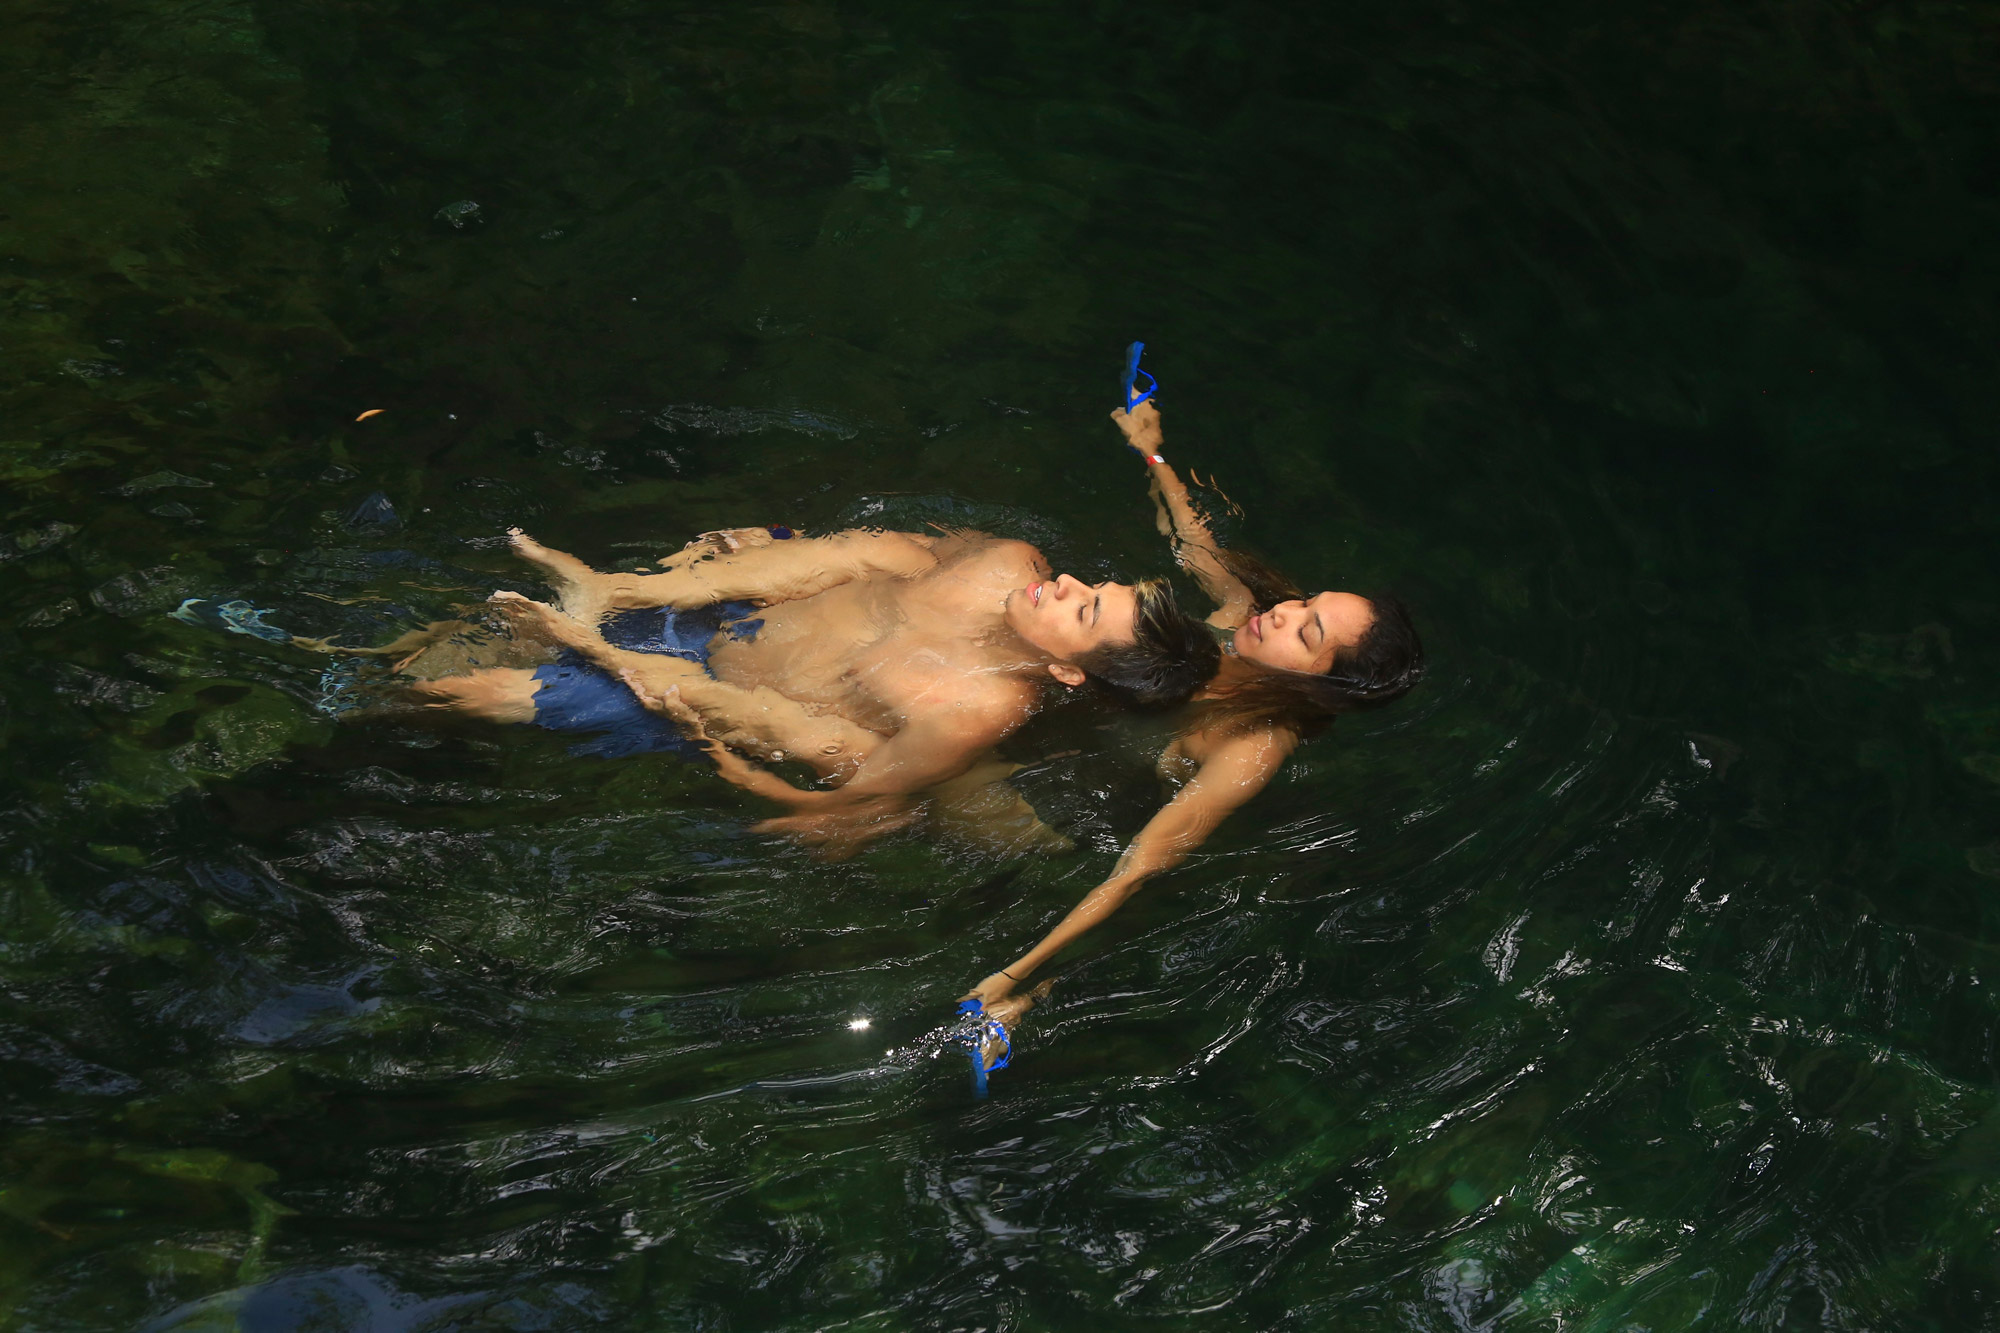 Soraya Pattiruhu - Zwemmen in een cenote in Mexico